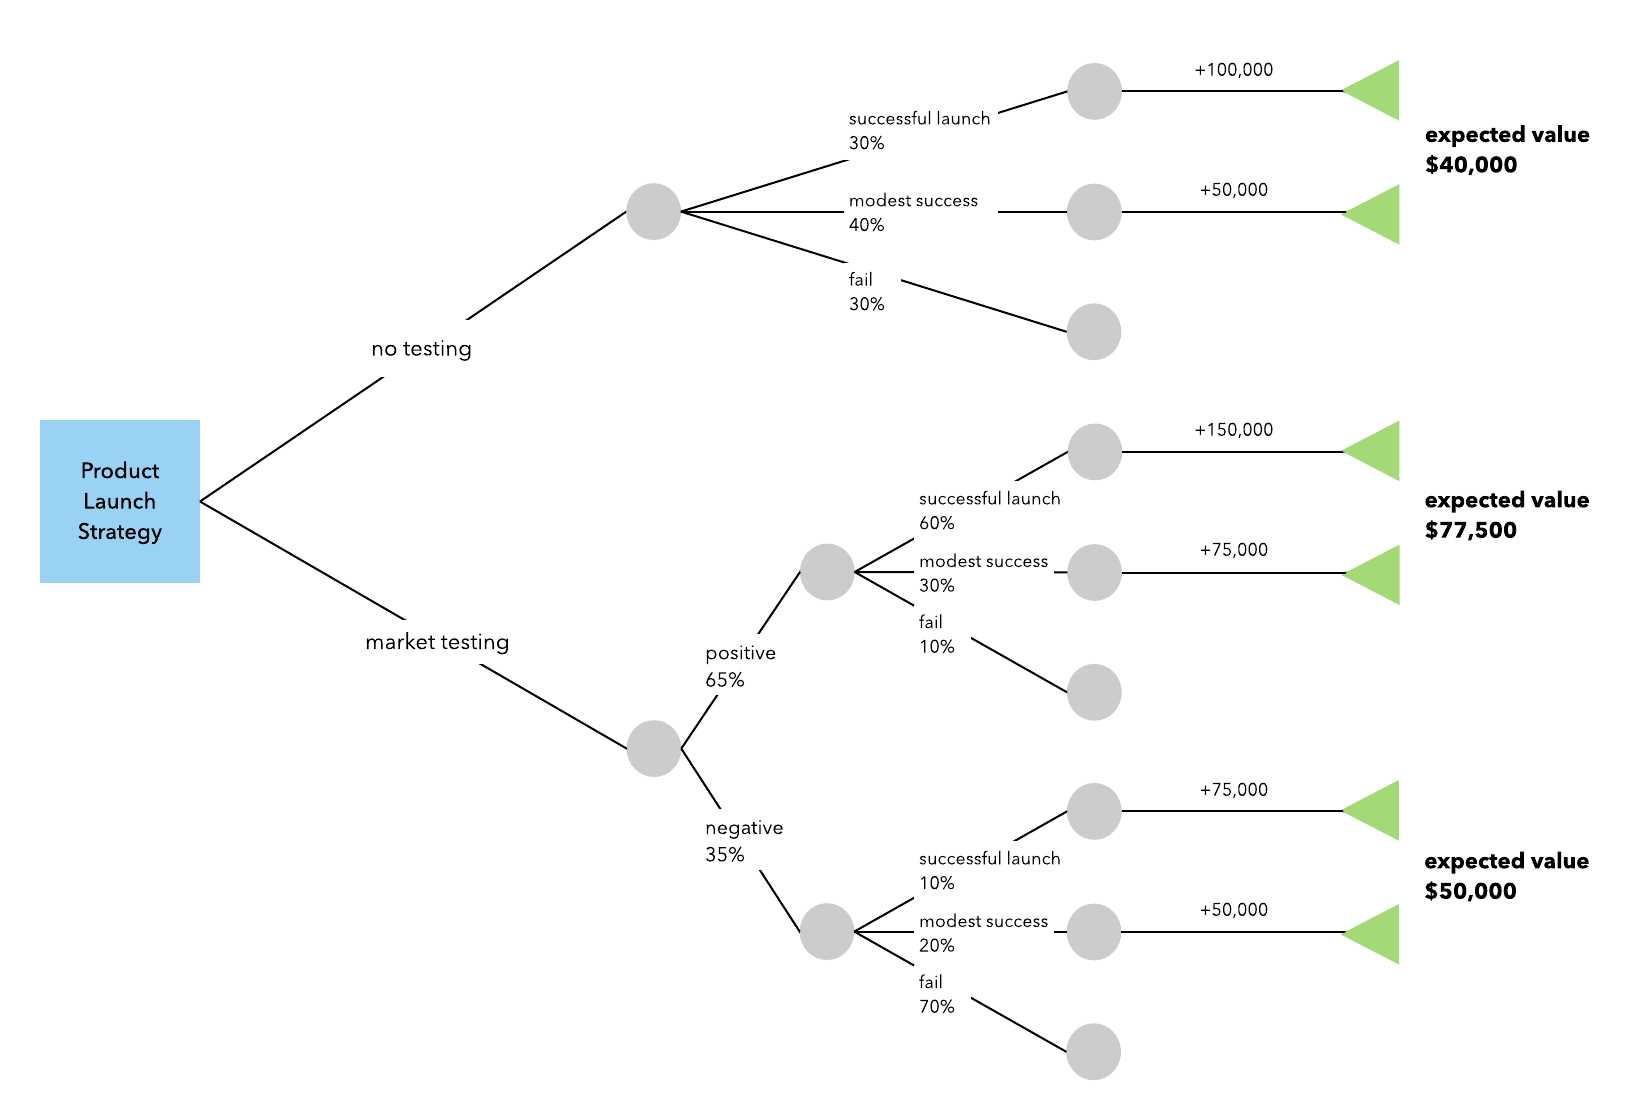 how to make a decision tree in excel lucidchart blog